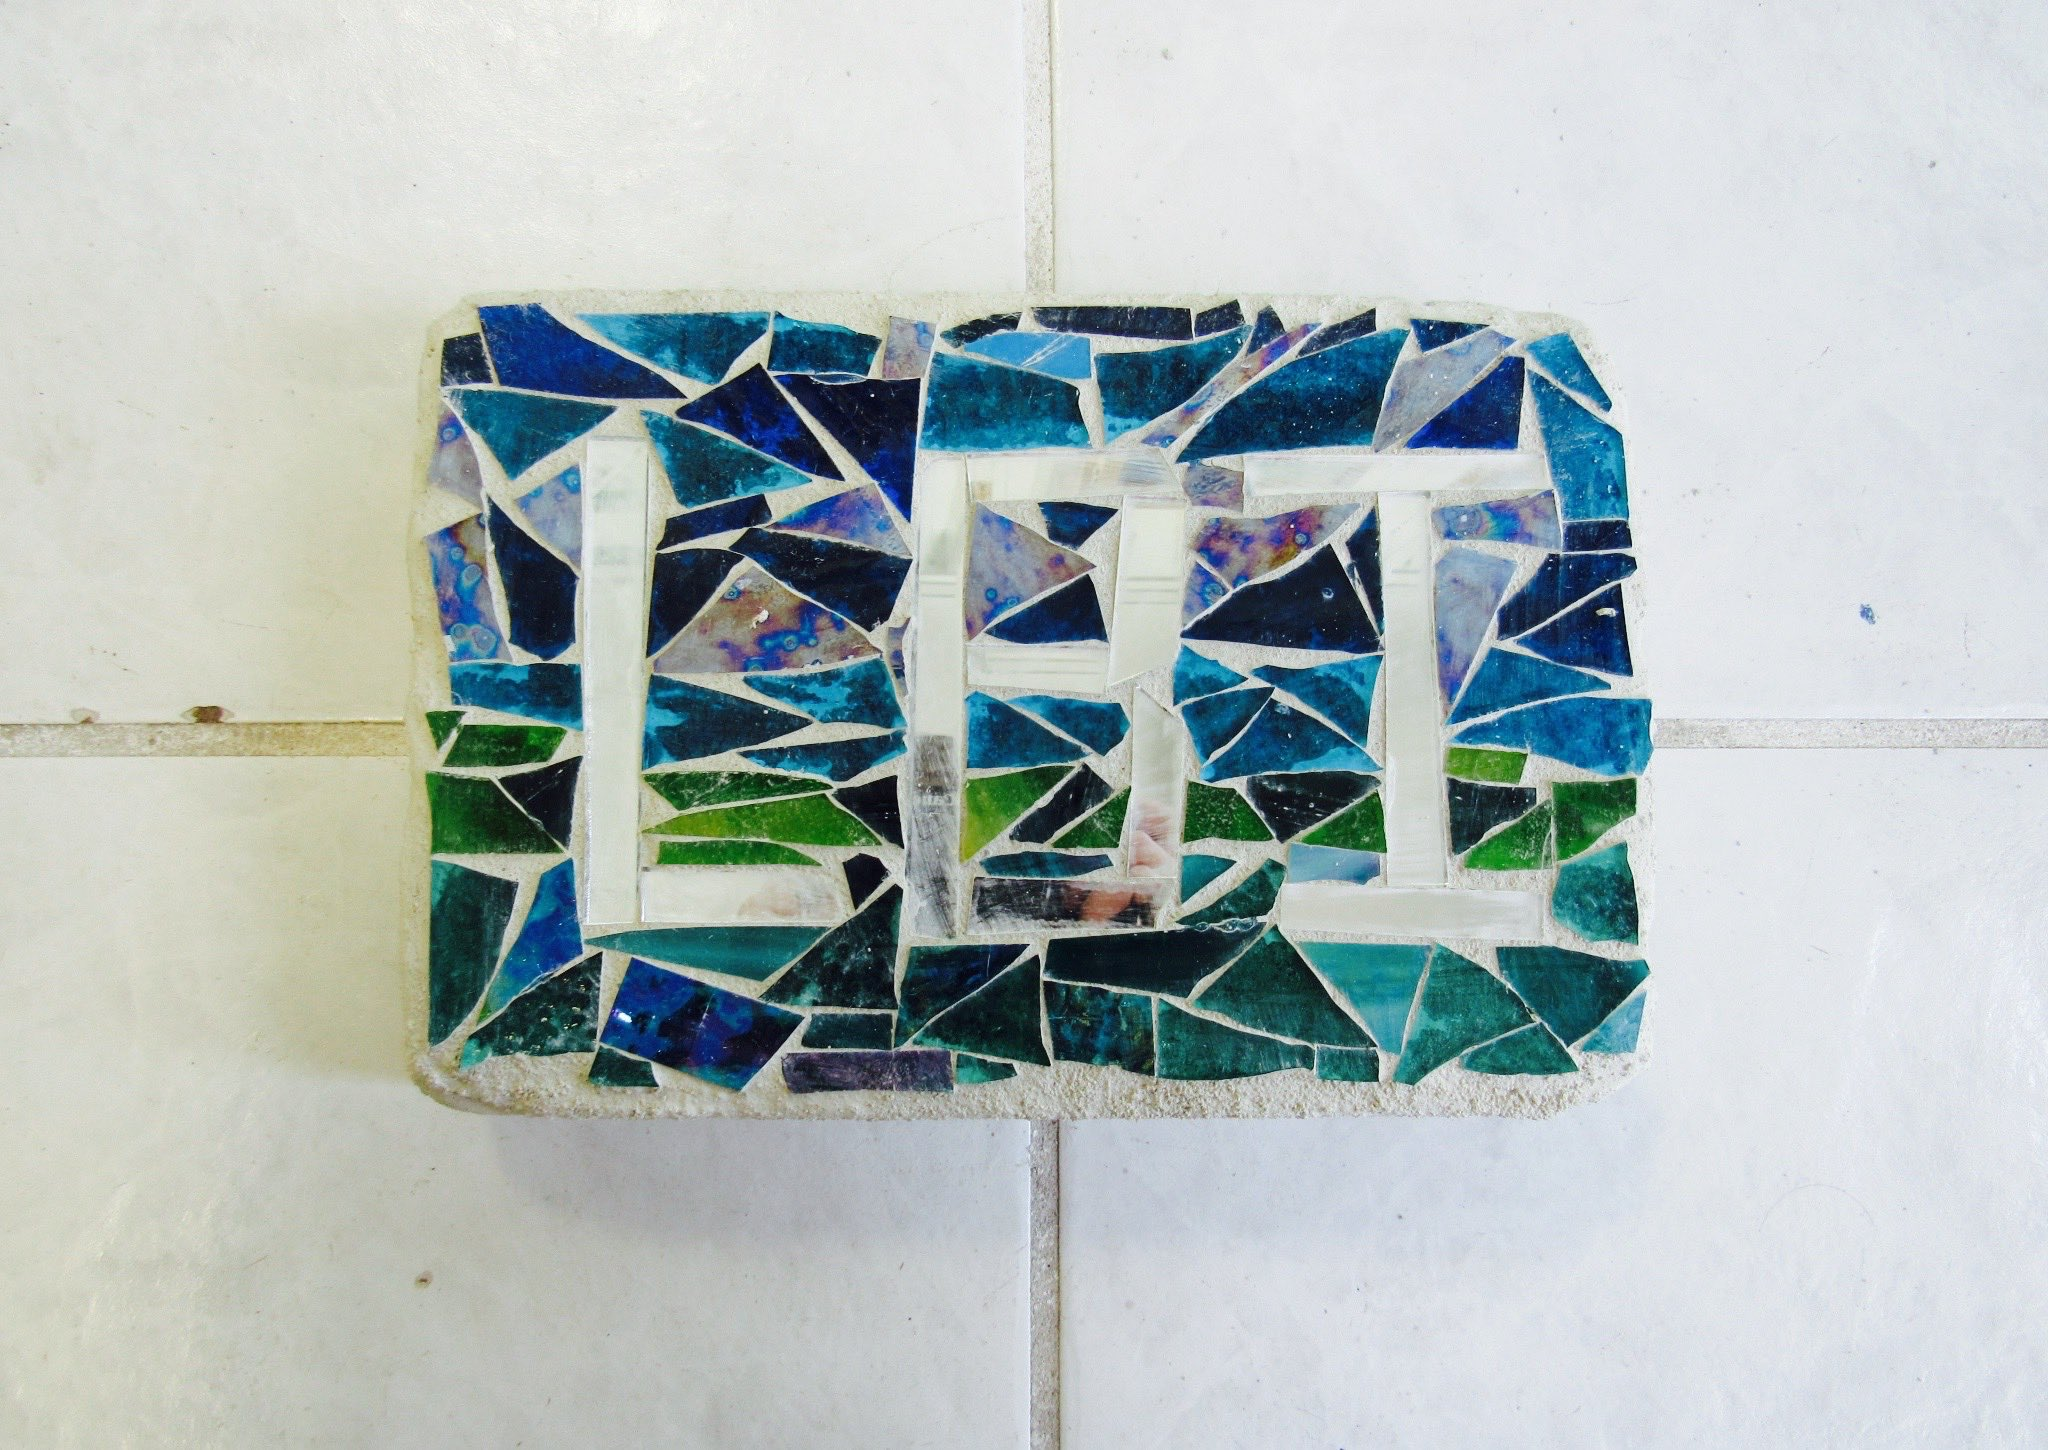 Handmade Outdoor Mosaic Garden Brick- made at SwellColors Glass Studio in Surf City, NJ. Come make your very own today!